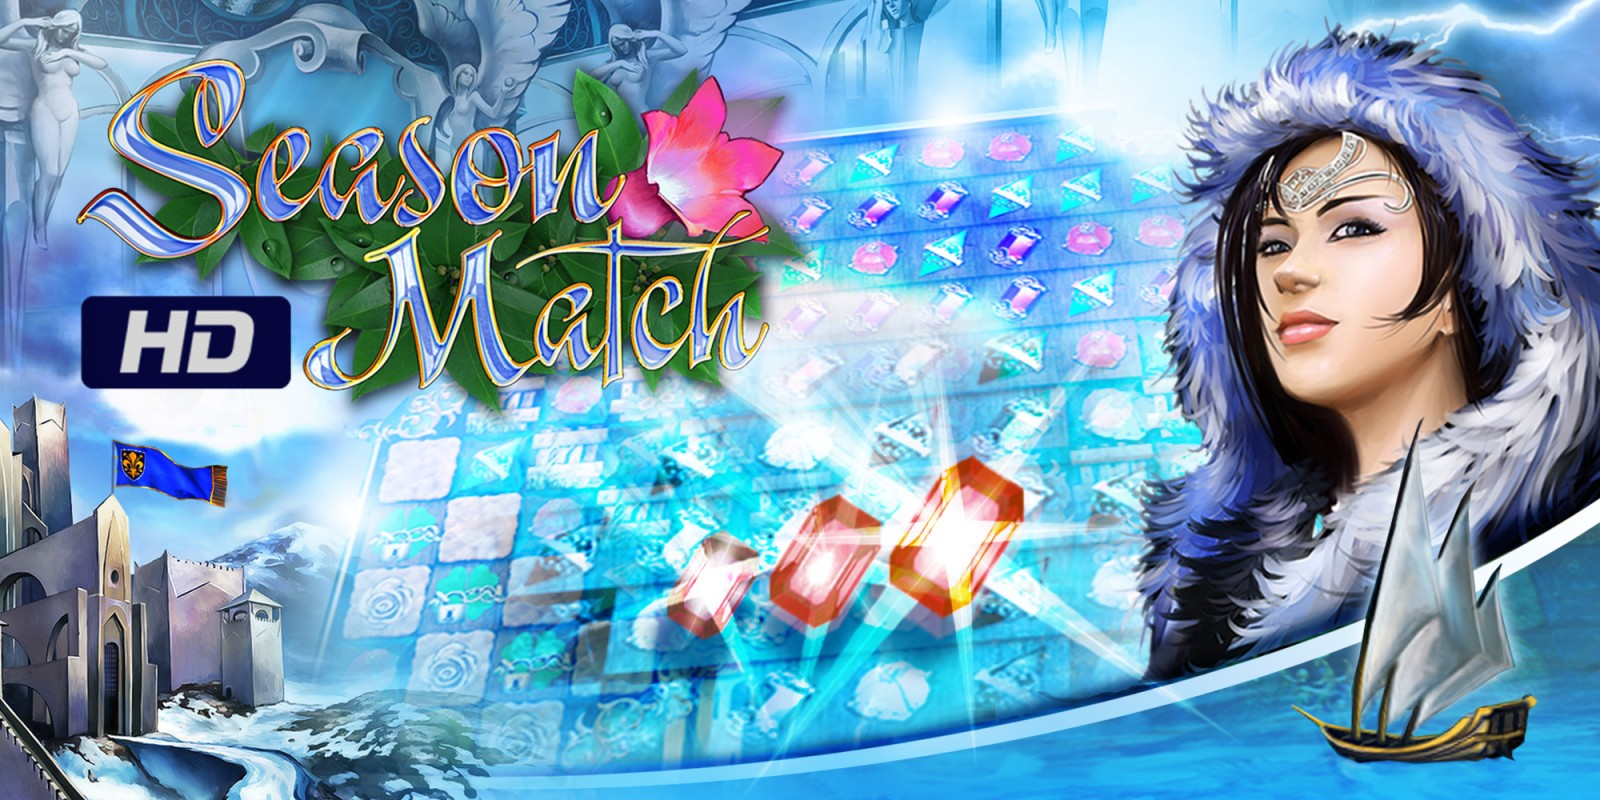 Season Match HD